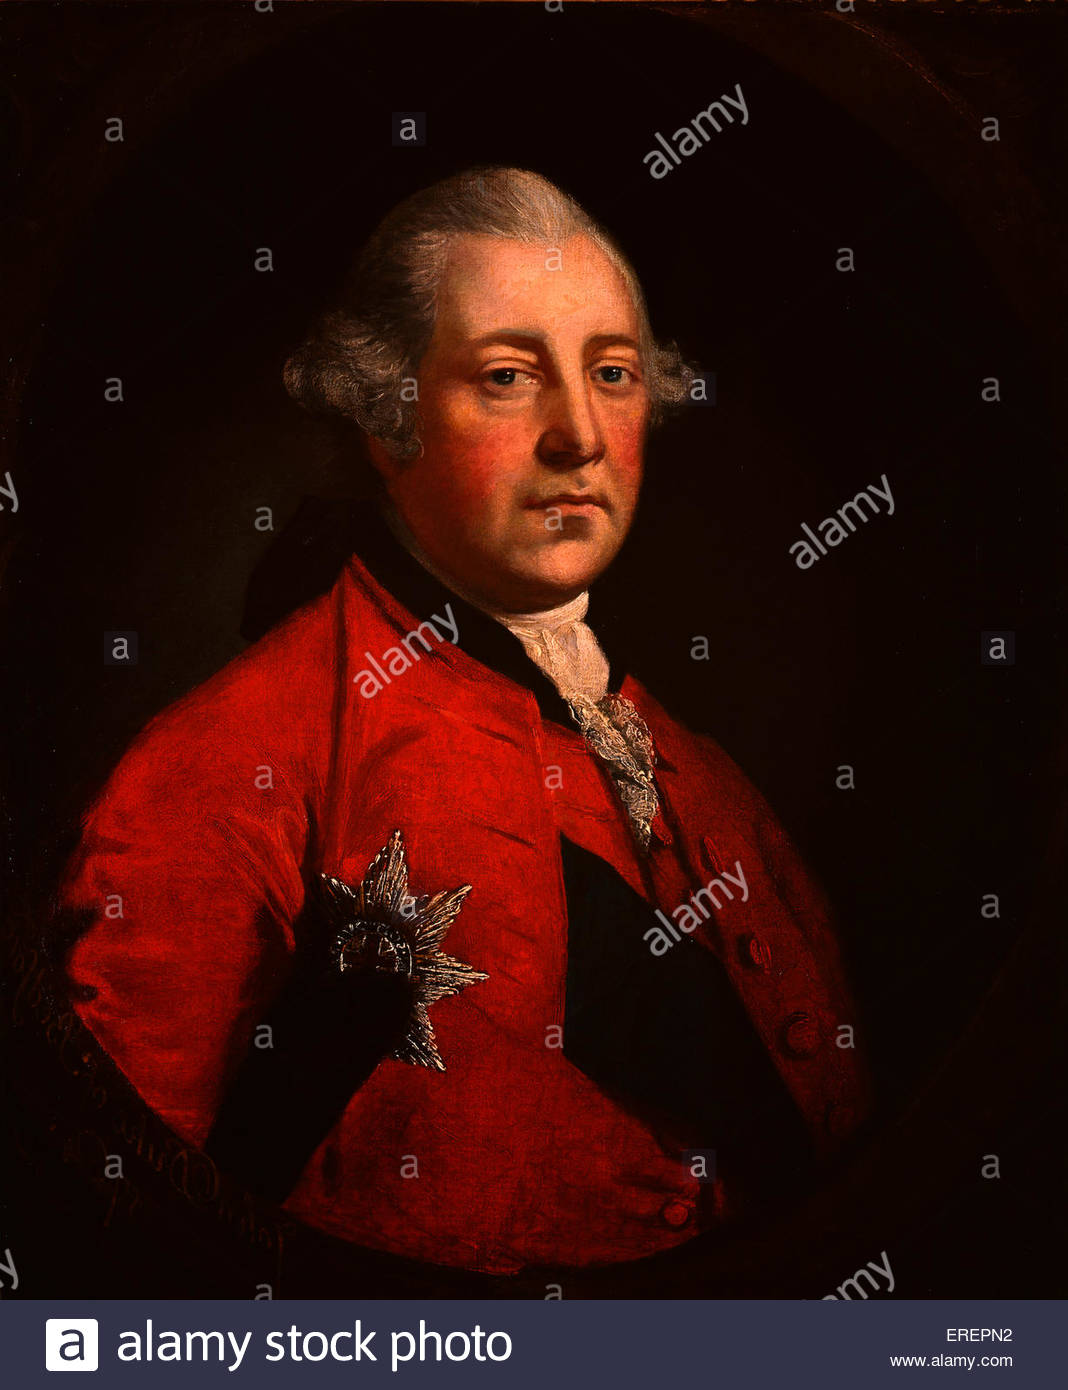 John Russell, 4th Duke of Bedford by Sir Joshua Reynolds, copied from the portrait by Thomas Gainsborough,  JR: - Stock Image